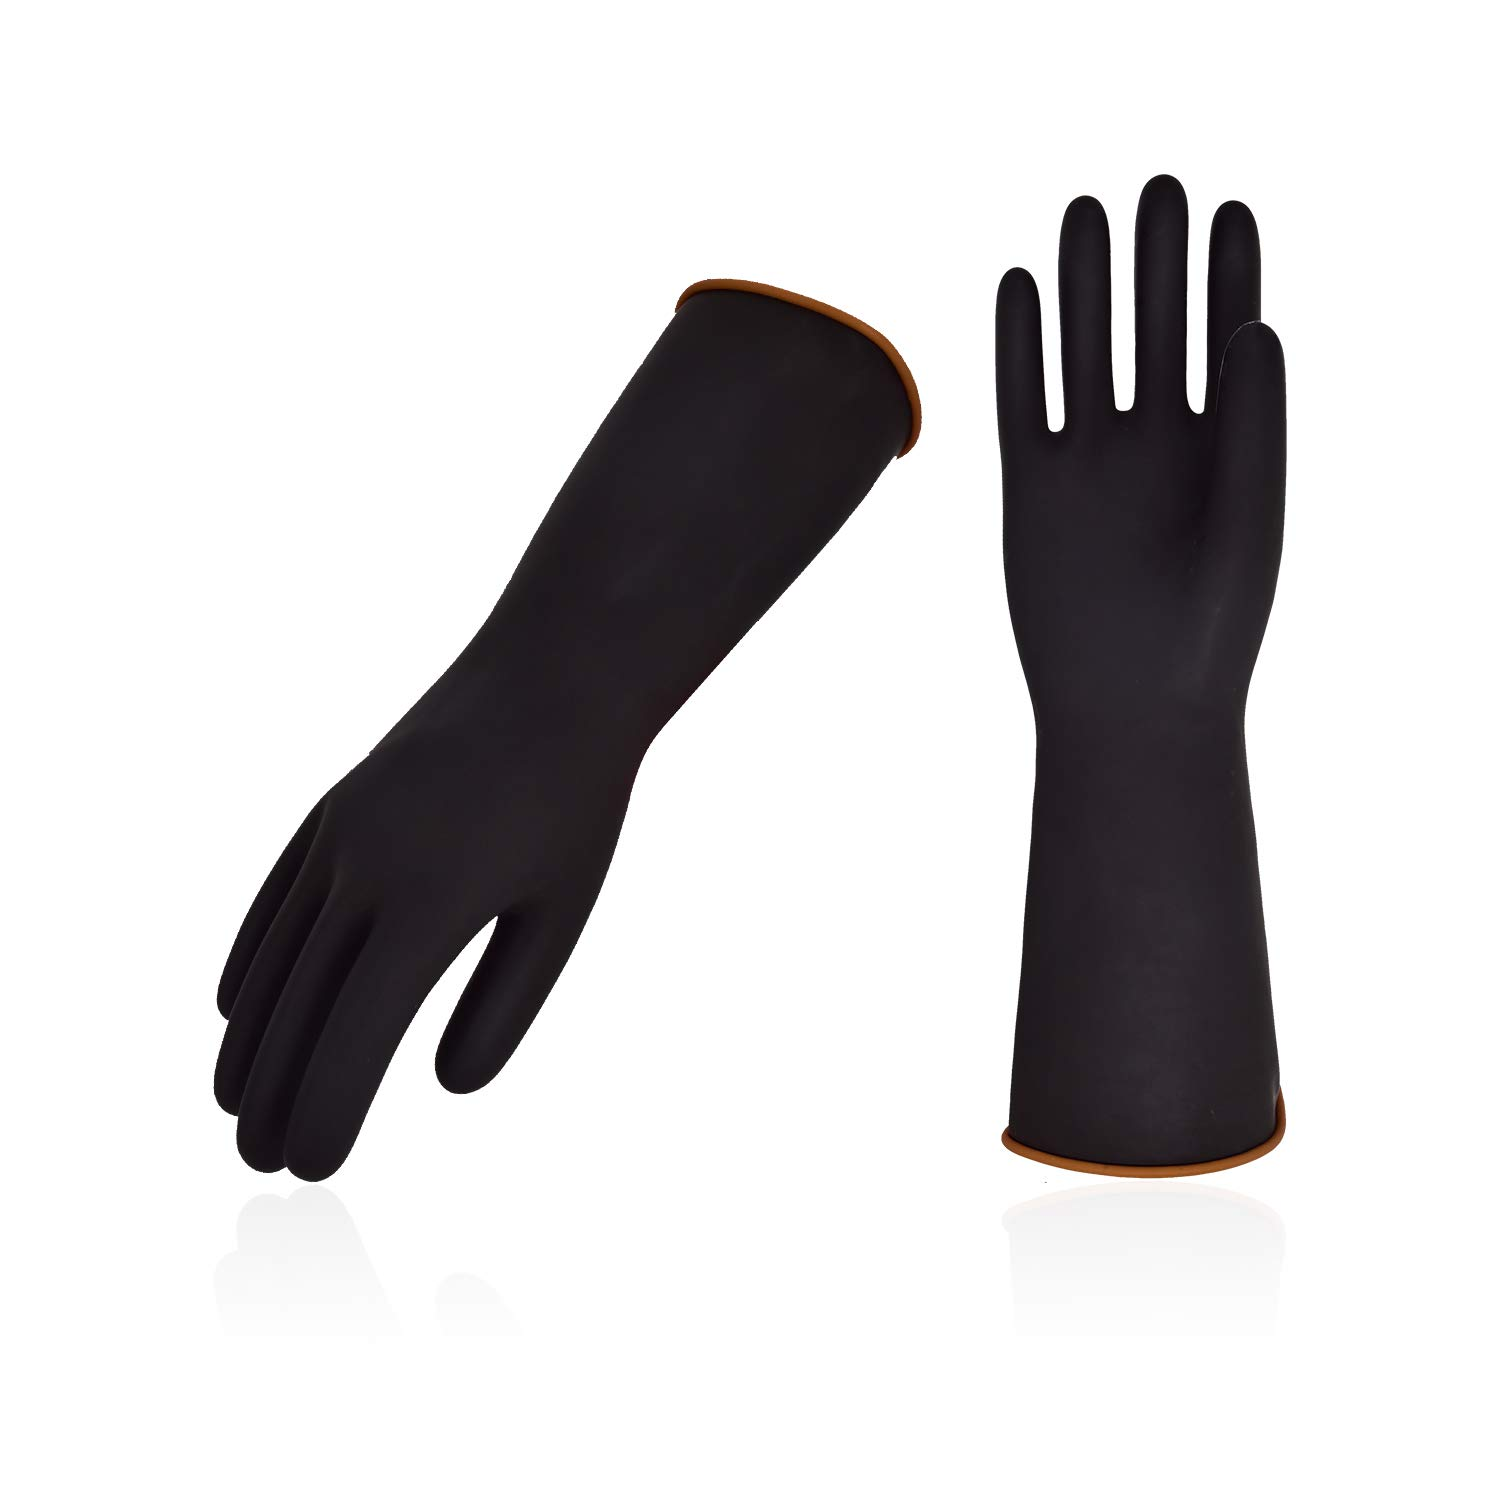 Vgo 5Pairs Heavy Duty Latex Chemical Resistant Gloves, Resist Strong Acid, Alkali and Oil(Size L,Black,ID4606)